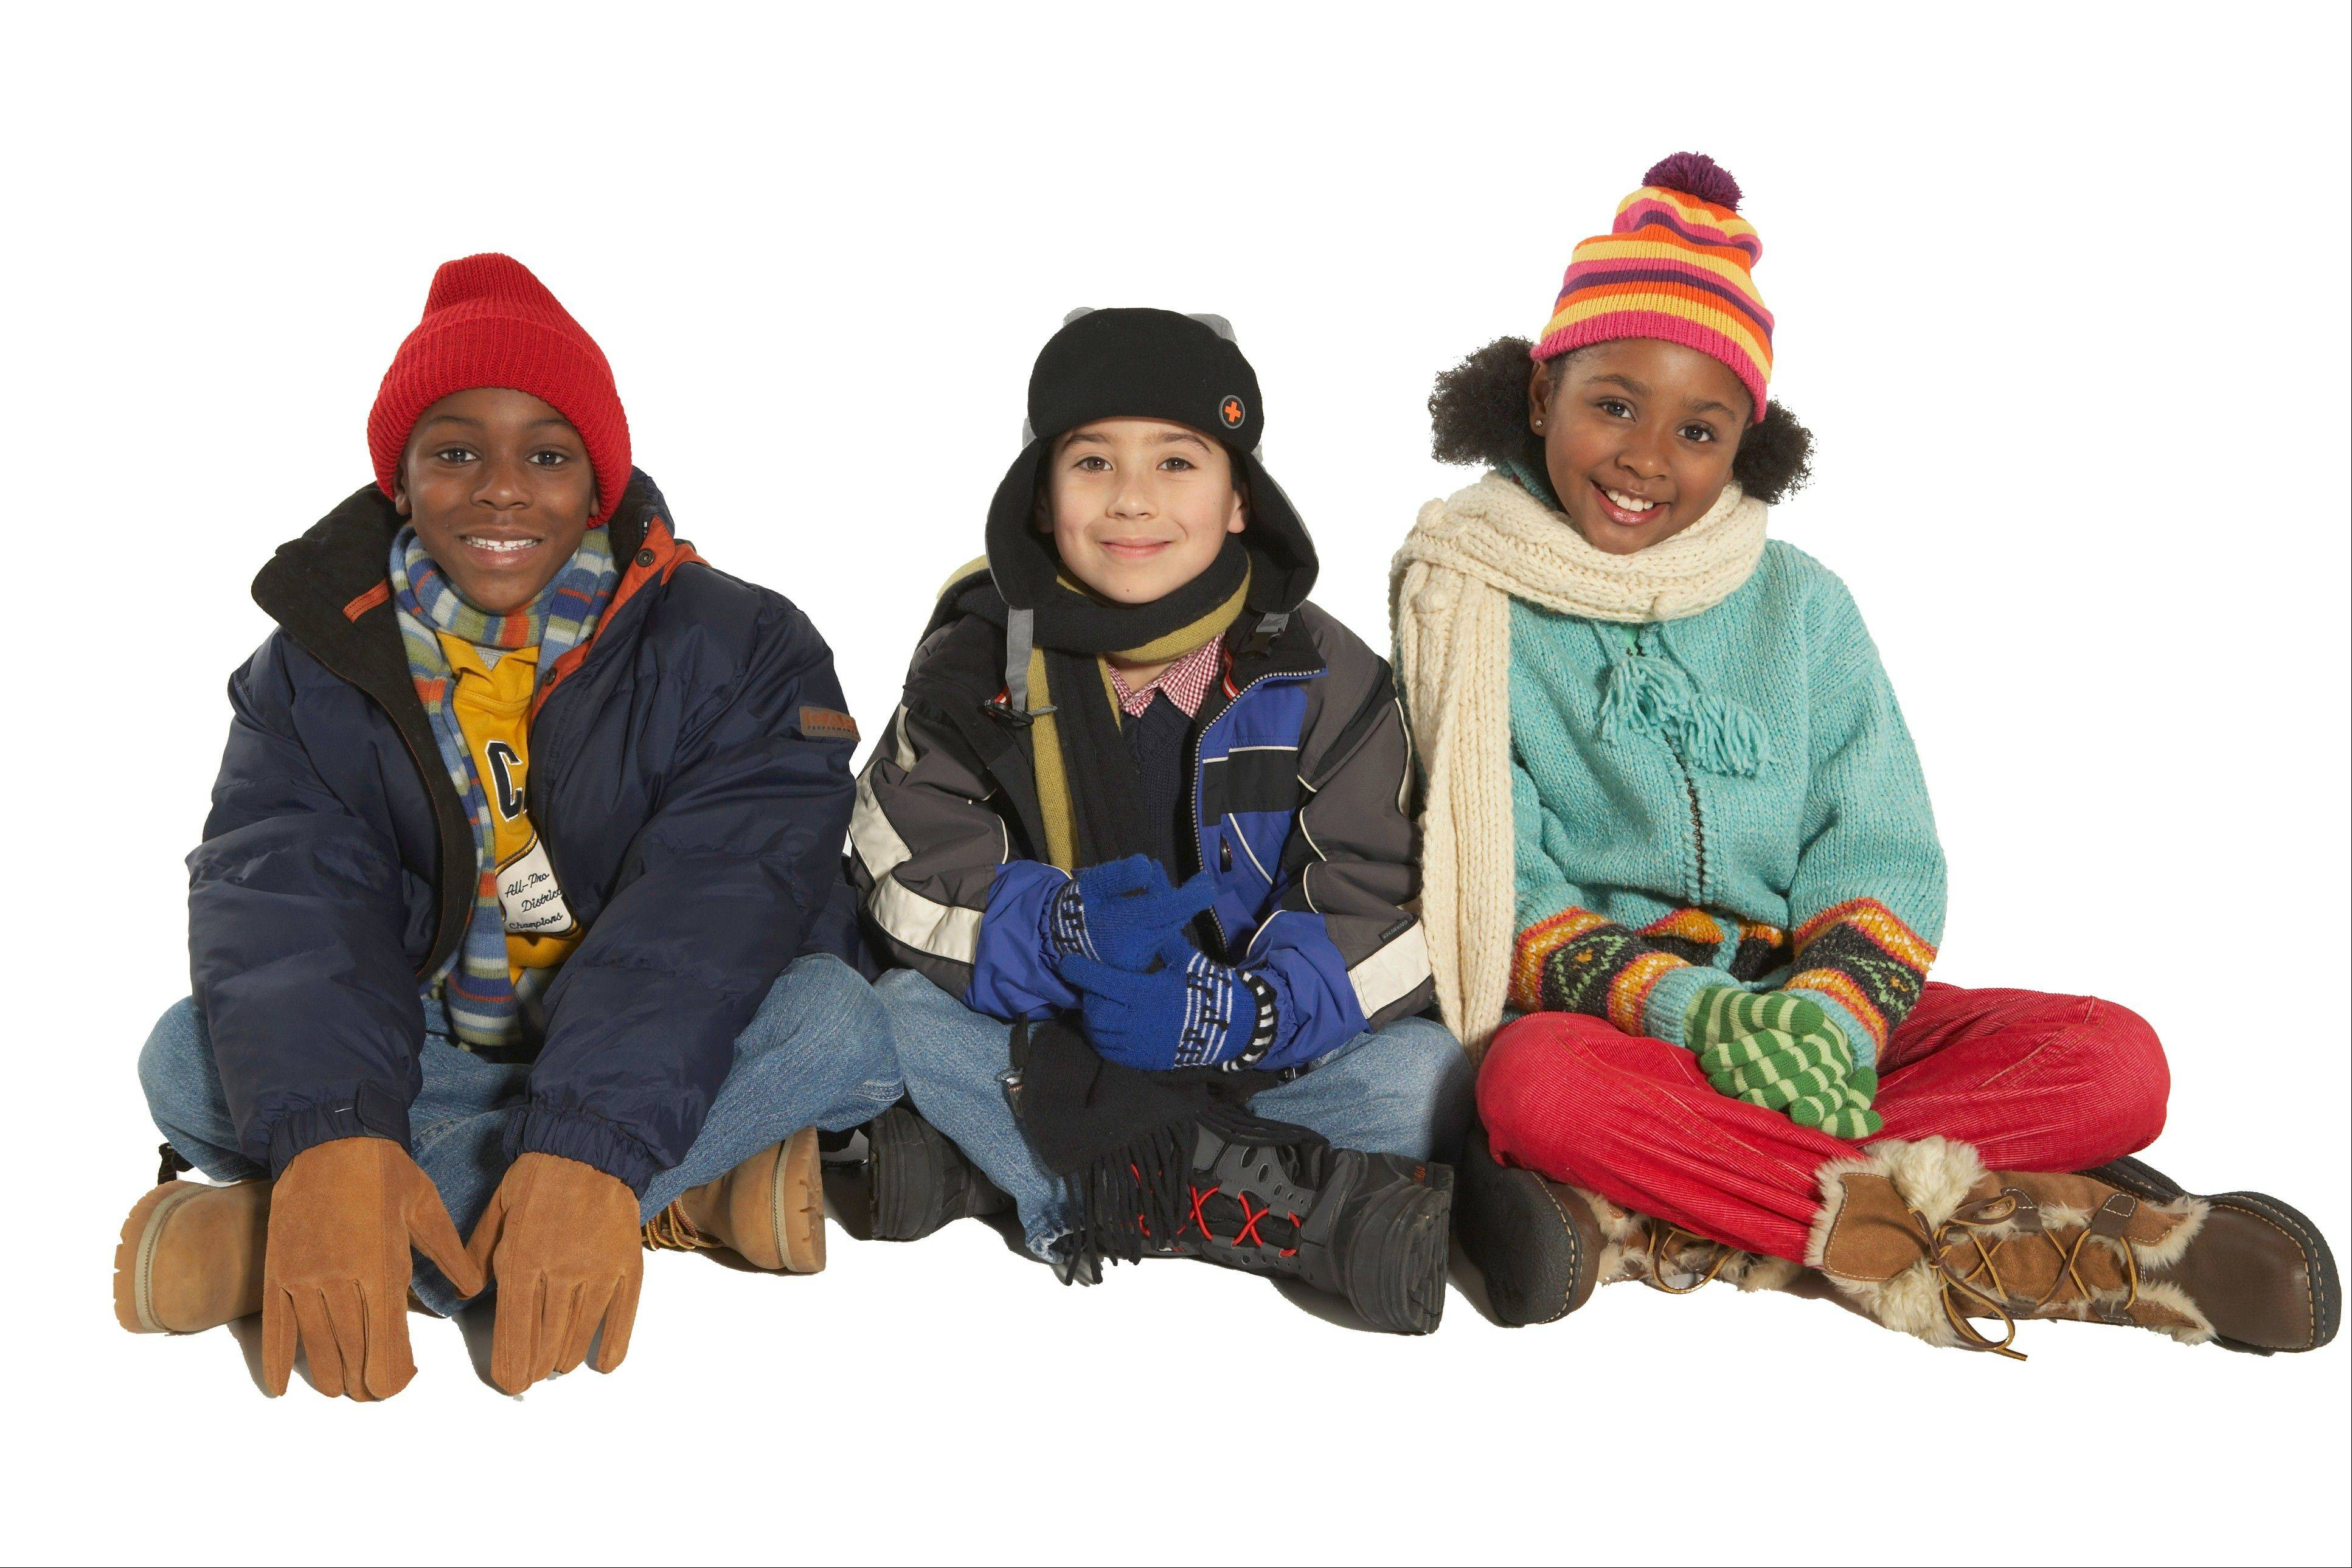 Kids lose body heat faster than adults, so they should be bundled properly in jackets, hats and gloves. And yes, we do lose more heat through our heads, so a hat is important.